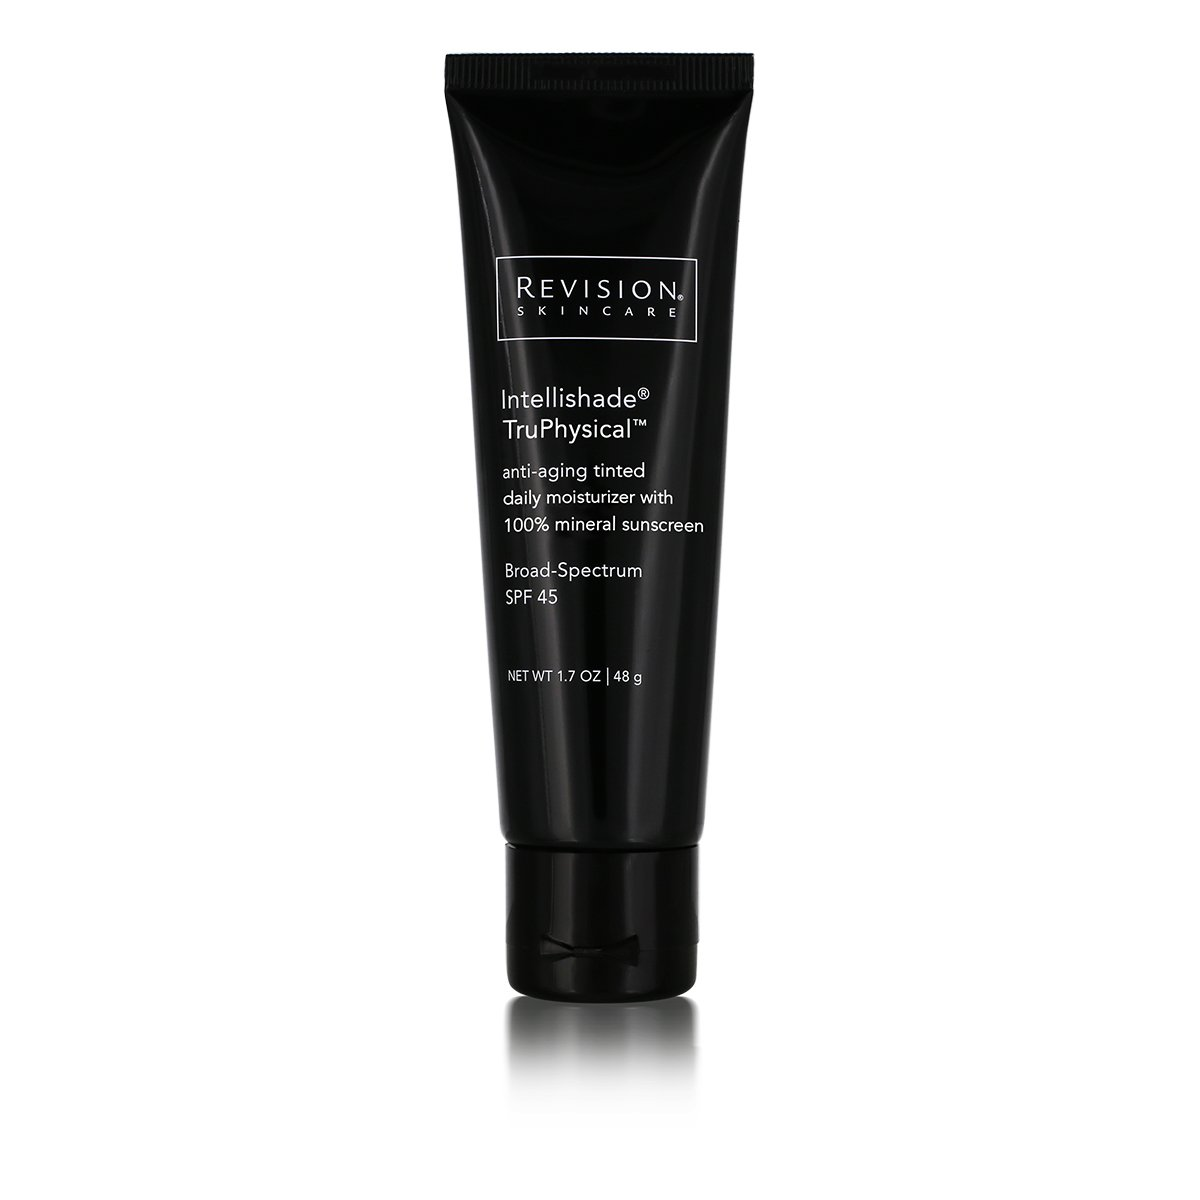 Intellishade TruPhysical by Revision